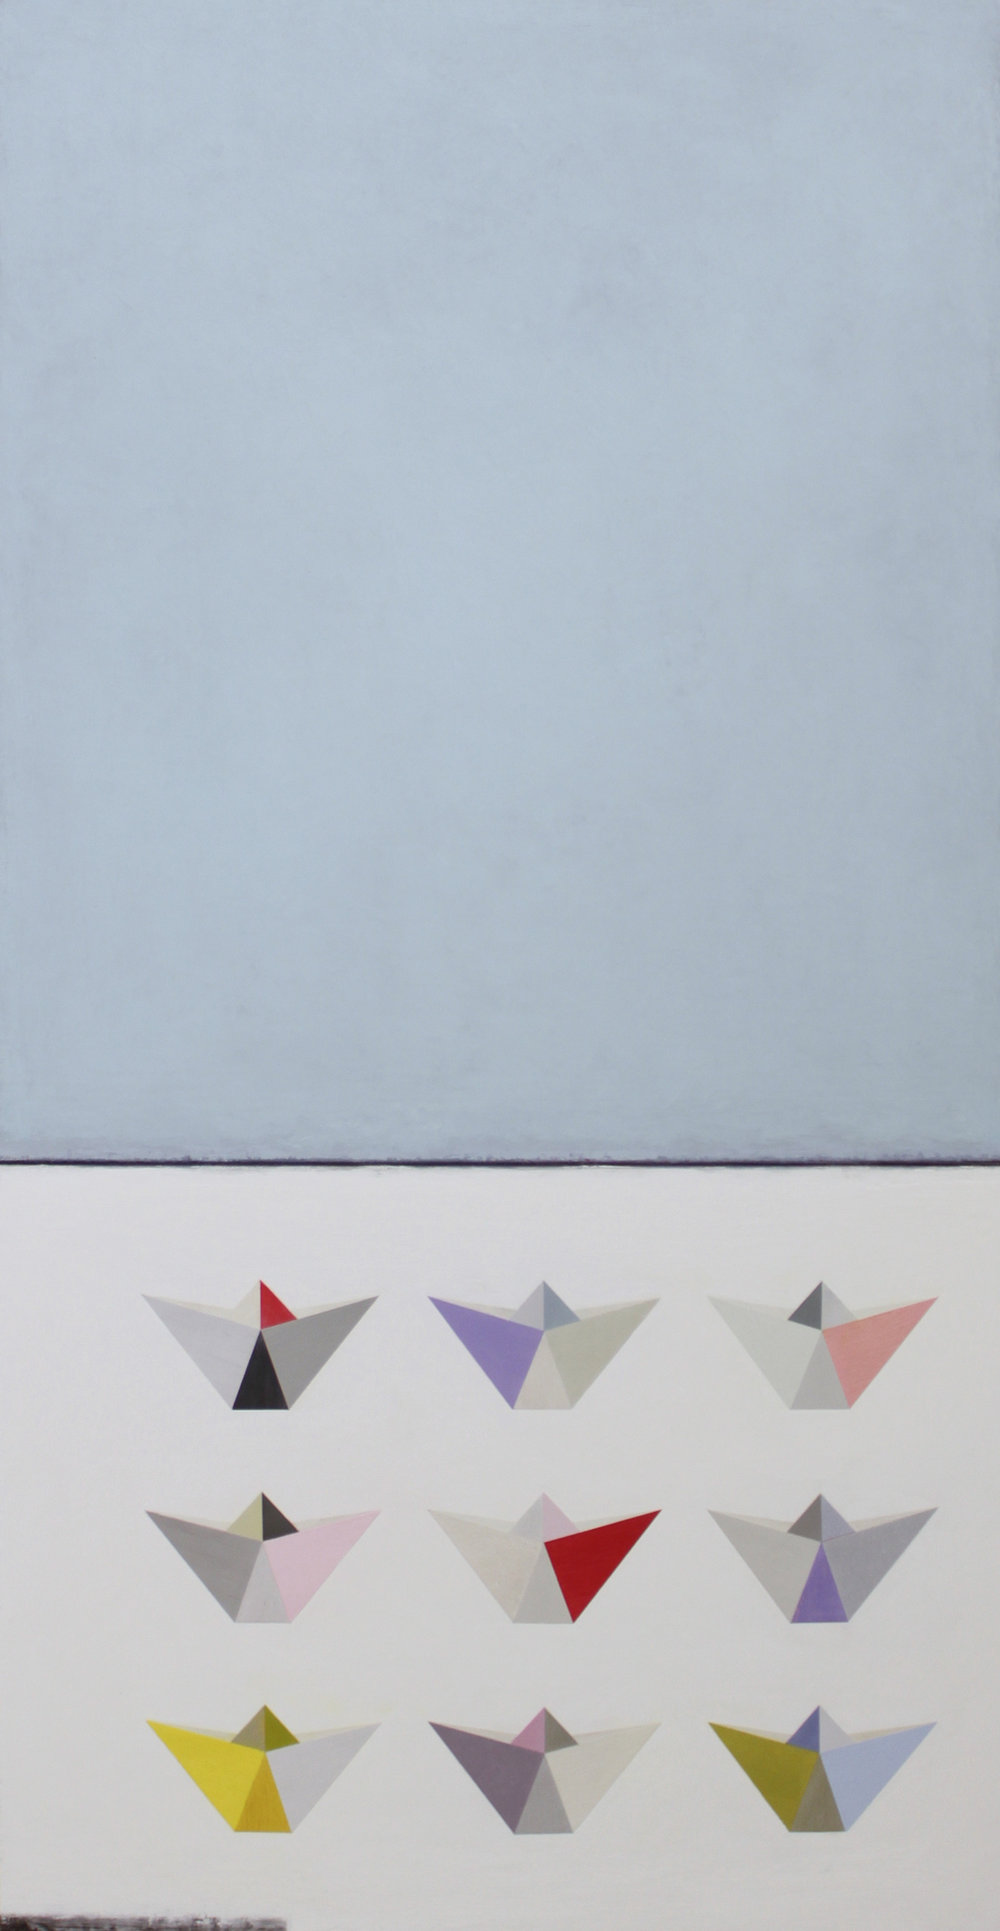 9 Origami boats 62x122cm oil gouache & graphite on canvas